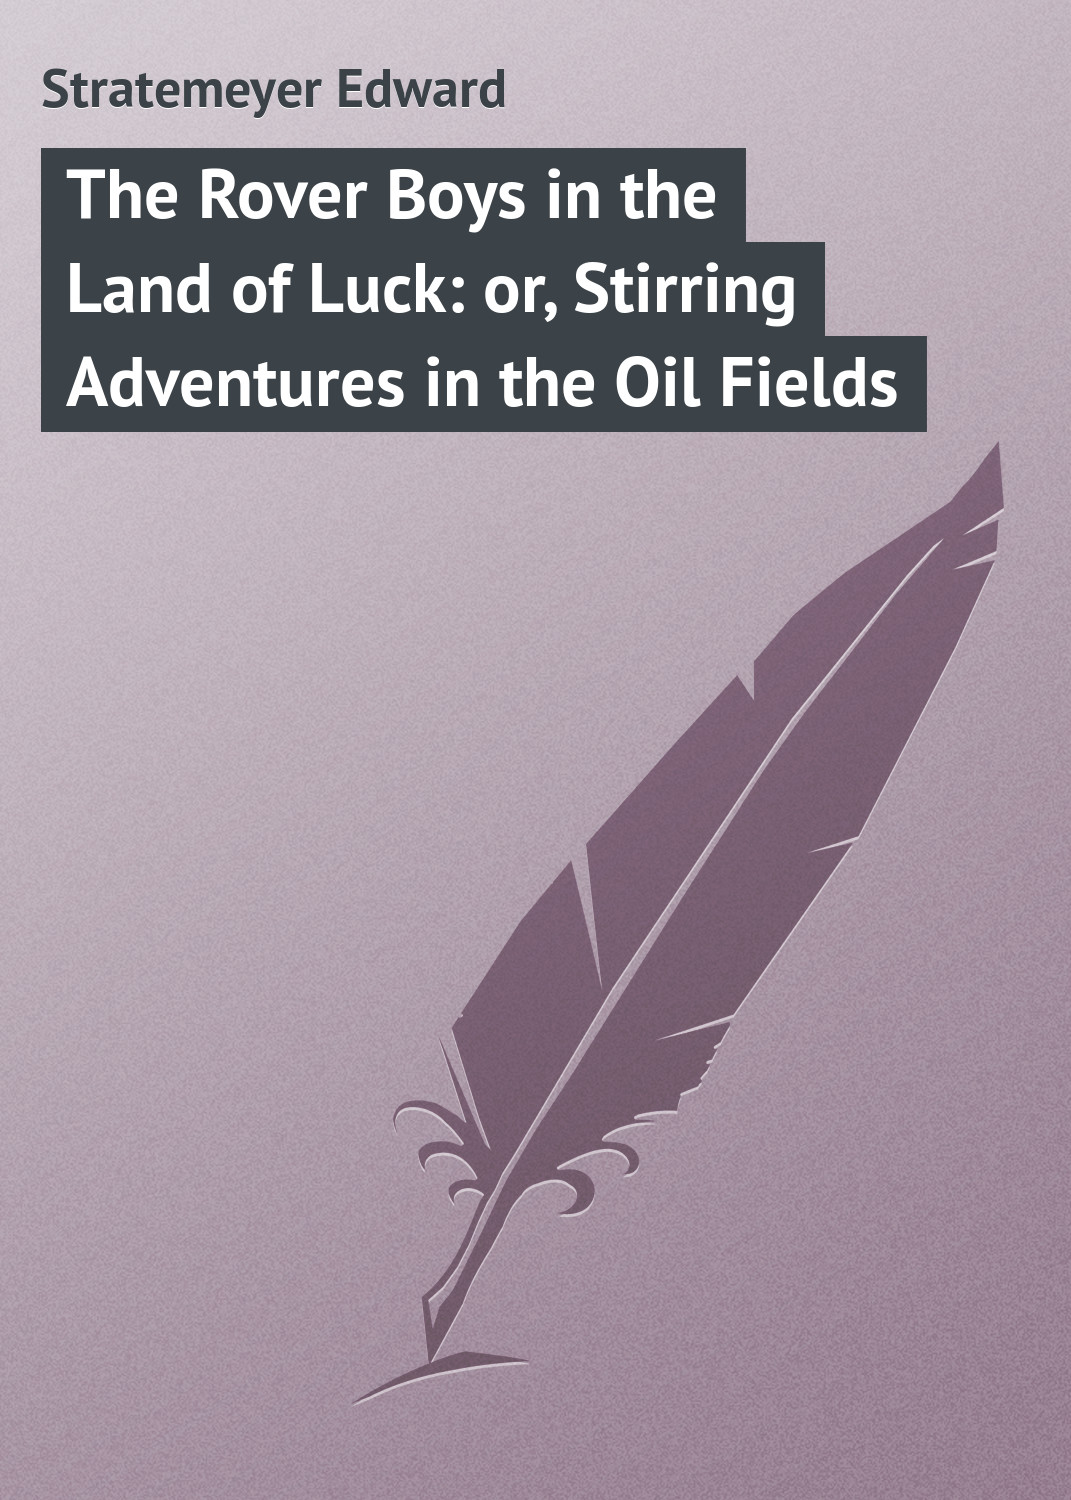 Stratemeyer Edward The Rover Boys in the Land of Luck: or, Stirring Adventures in the Oil Fields stratemeyer edward the rover boys in the land of luck or stirring adventures in the oil fields